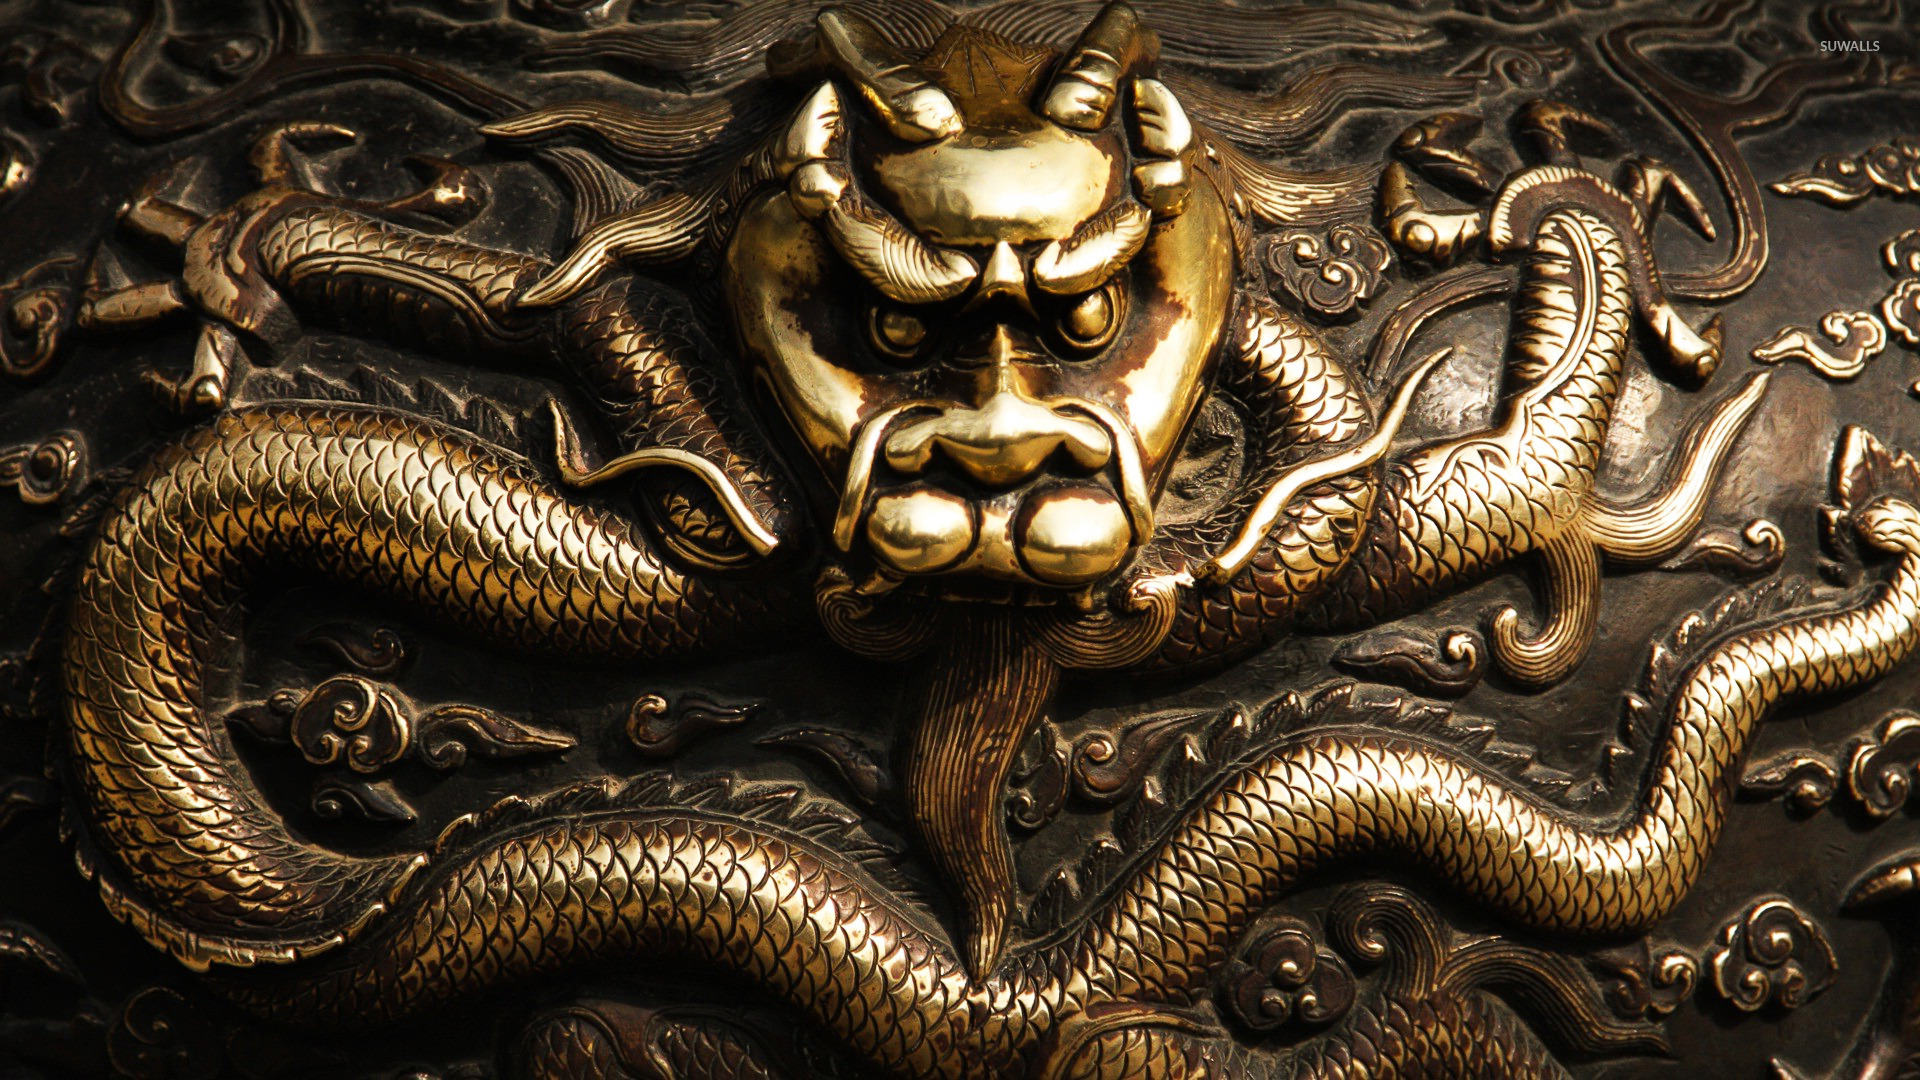 gold dragons wallpaper - photo #25